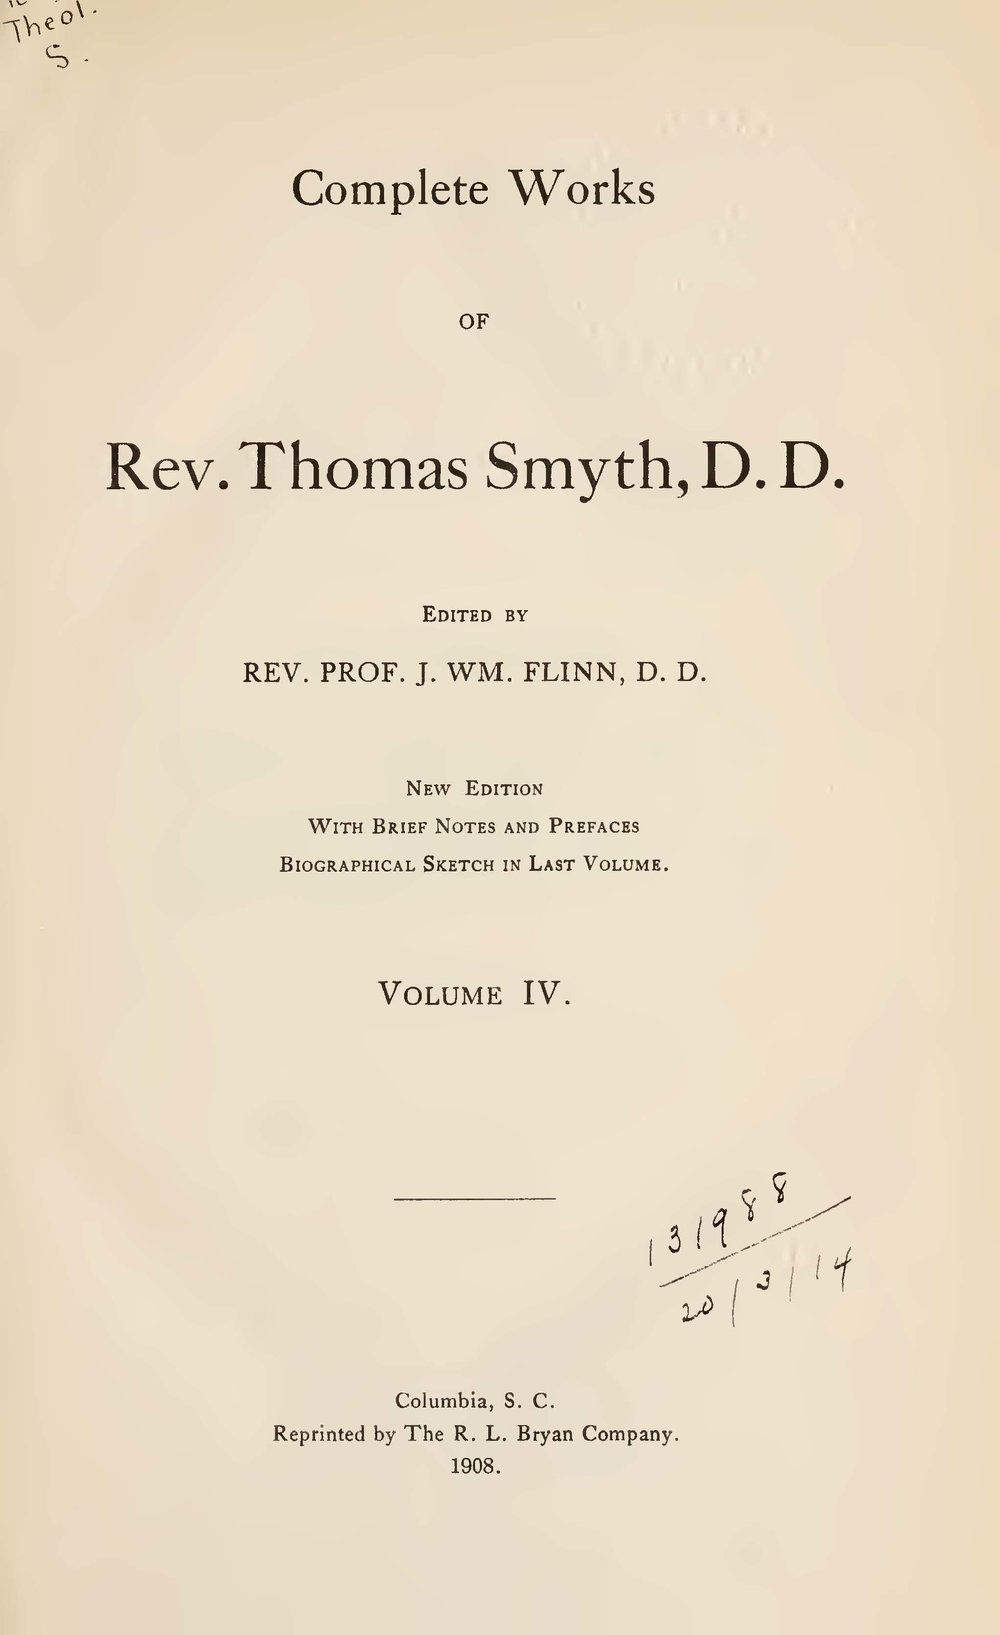 1.  The Name, Nature and Functions of Ruling Elders 2. Theories of the Eldership (from the Biblical Reportory and Princeton Review) 3. Theories of the Eldership (from the North Carolina Presbyterian) 4. The Office and Functions of Deacons in Relation to those of the Pastor and Ruling Elders Defined and Distinguished 5. The History, Character and Results of the Westminster Assembly of Divines. A Discourse in Commemoration of the Bi-Centenary Anniversary of that Body 6. An Ecclesiastical Catechism of the Presbyterian Church for the use of Families, Bible-Classes, and Private Members 7. A Sabbath School Teaching Service for the Whole Church, Instituted by Christ, in Seven Articles 8. The Nature and Claims of Young Men's Christian Associations